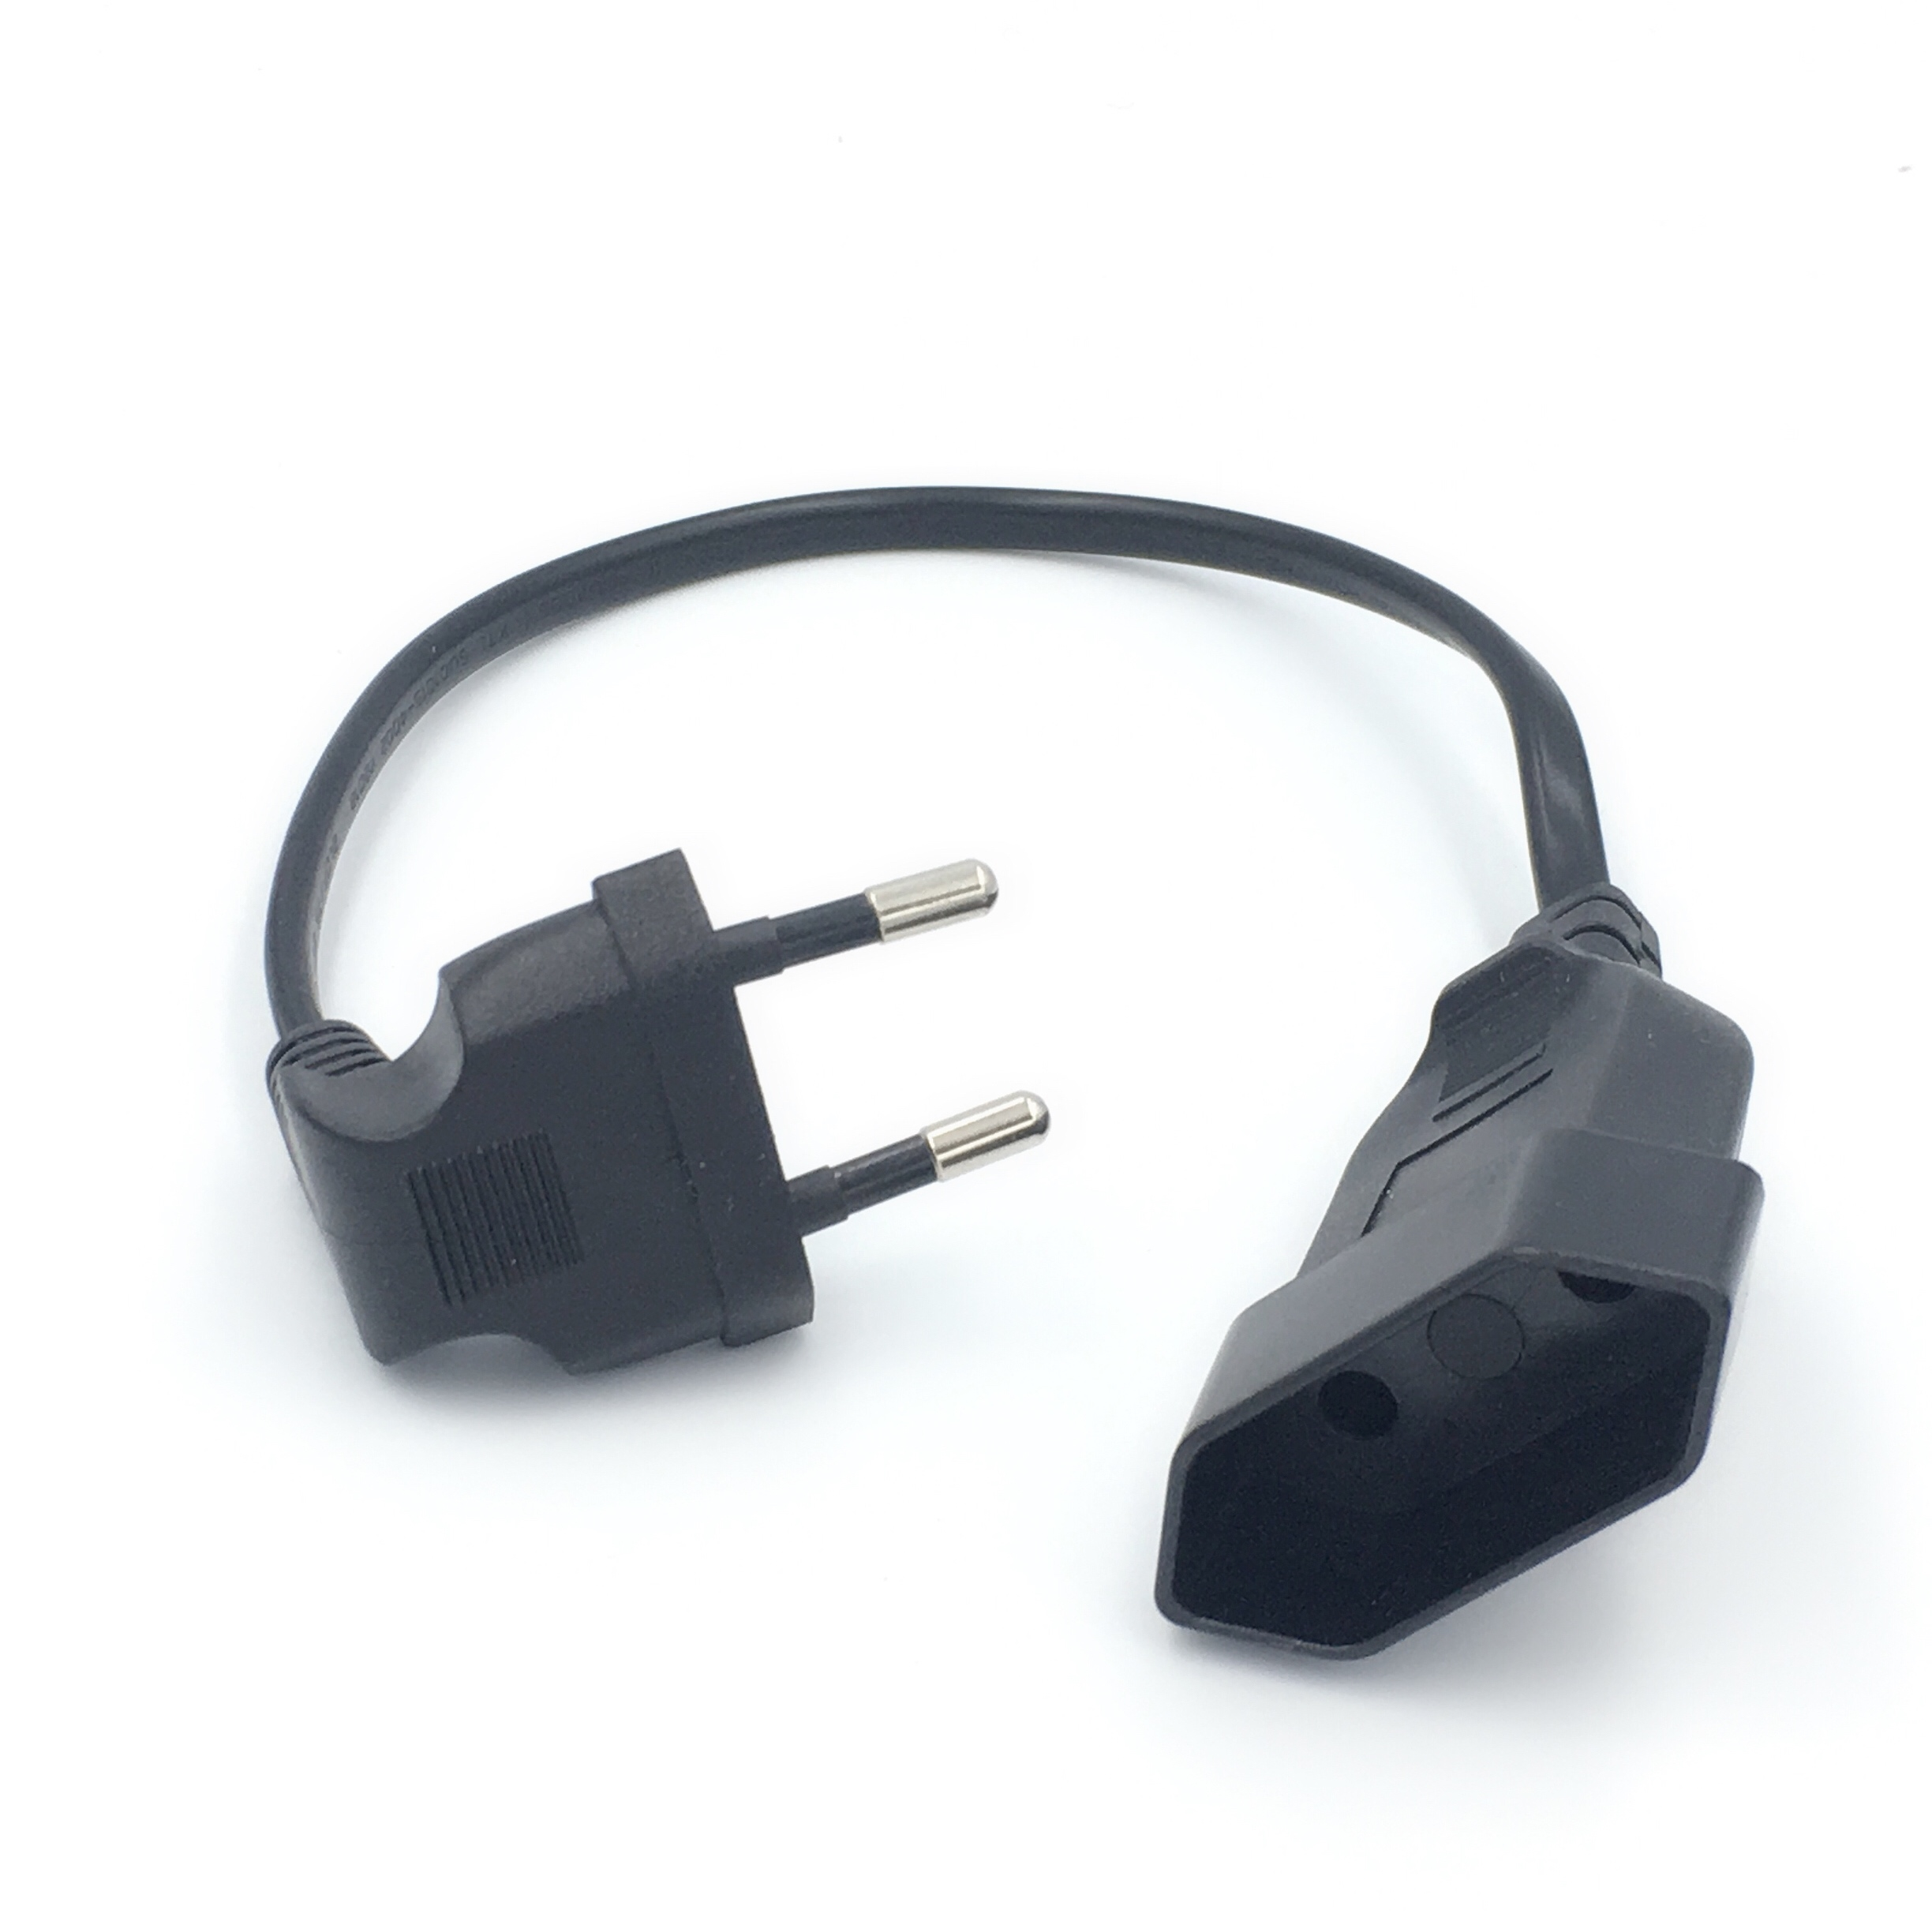 1PCS EU Power Adapter Cord,90 Degree Angled European Round 2Pin Male To Female Plug Power Cable For UPS PDU 0.3M/0.6M